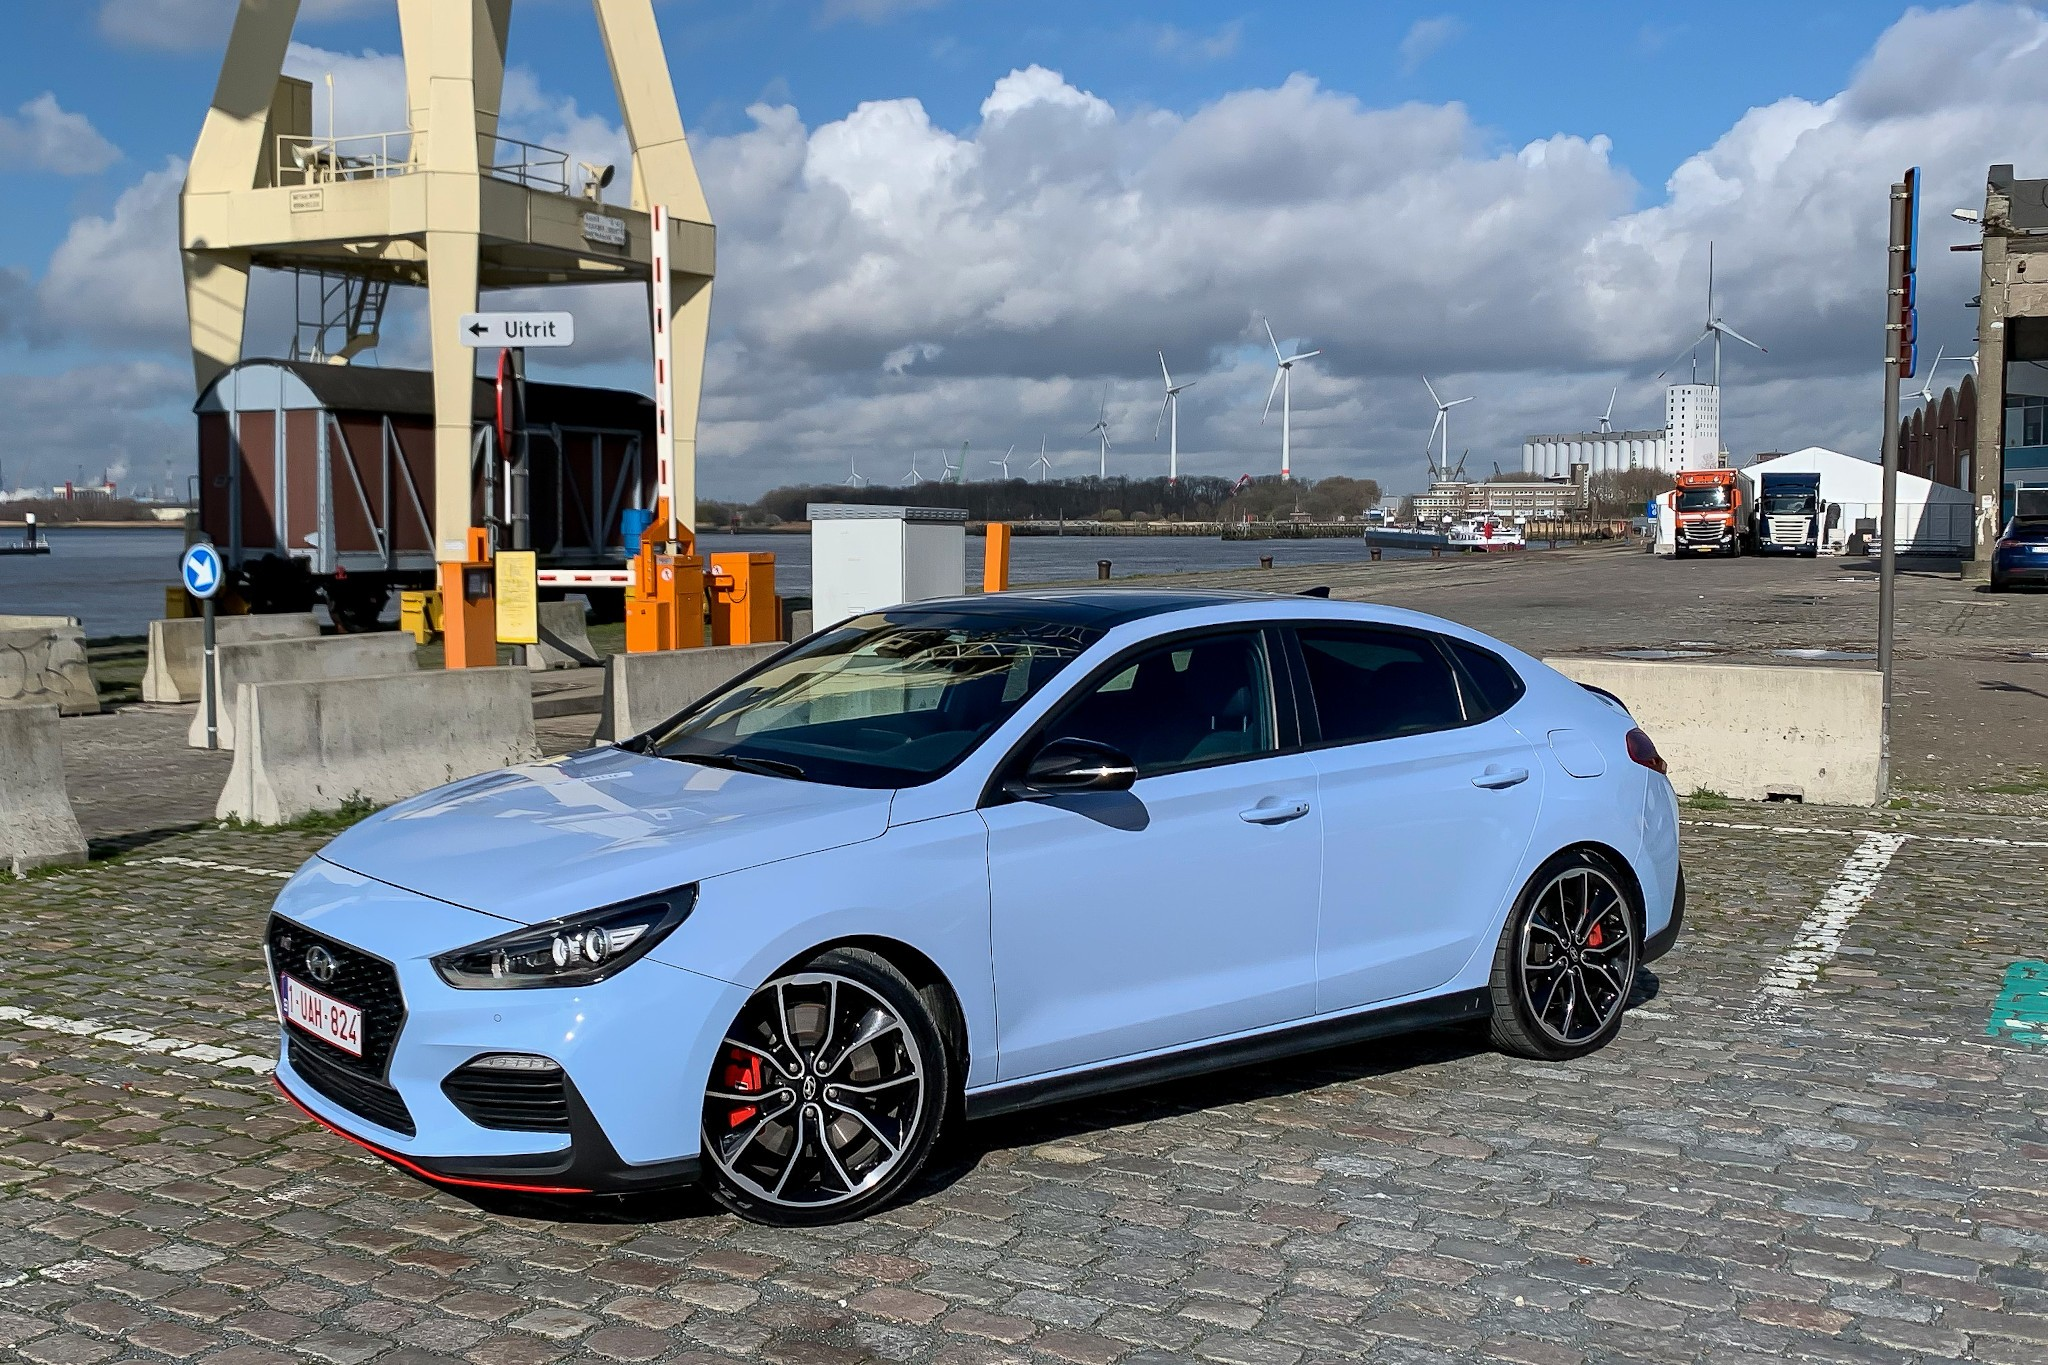 The 2020 Hyundai i30 Fastback N Is the Hyundai You Want But Can't Have